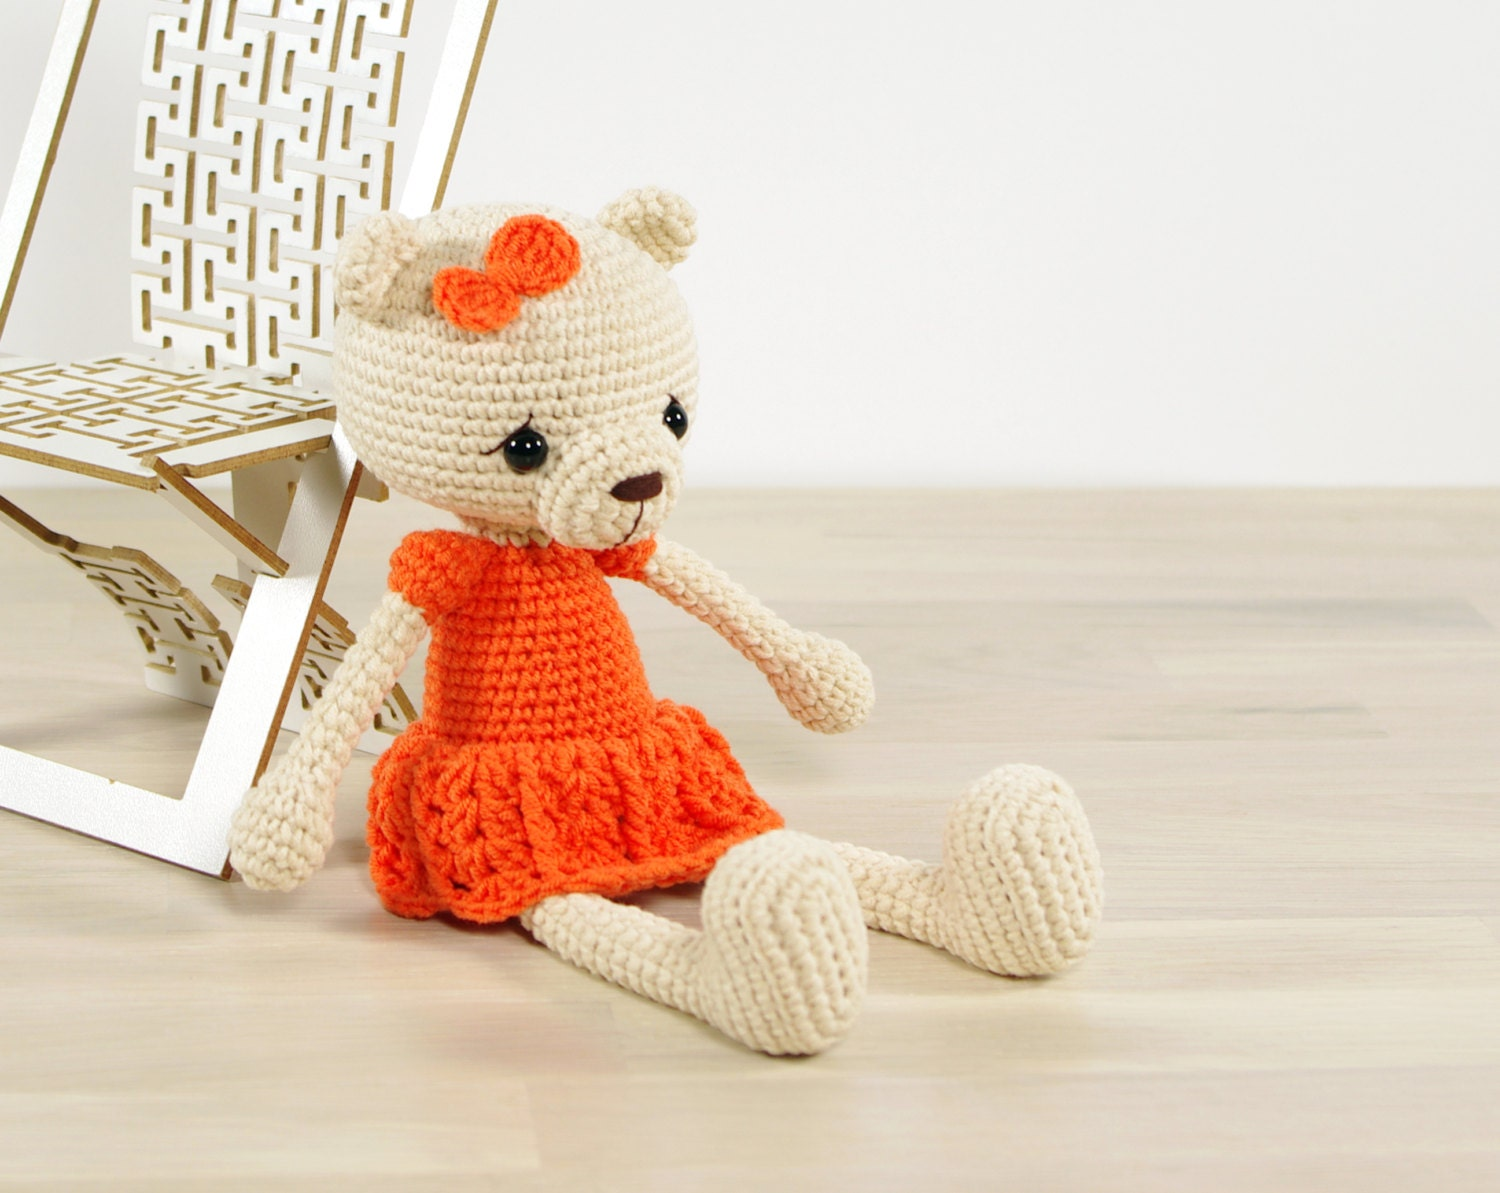 PATTERN: Teddy bear in a dress Amigurumi tutorial with